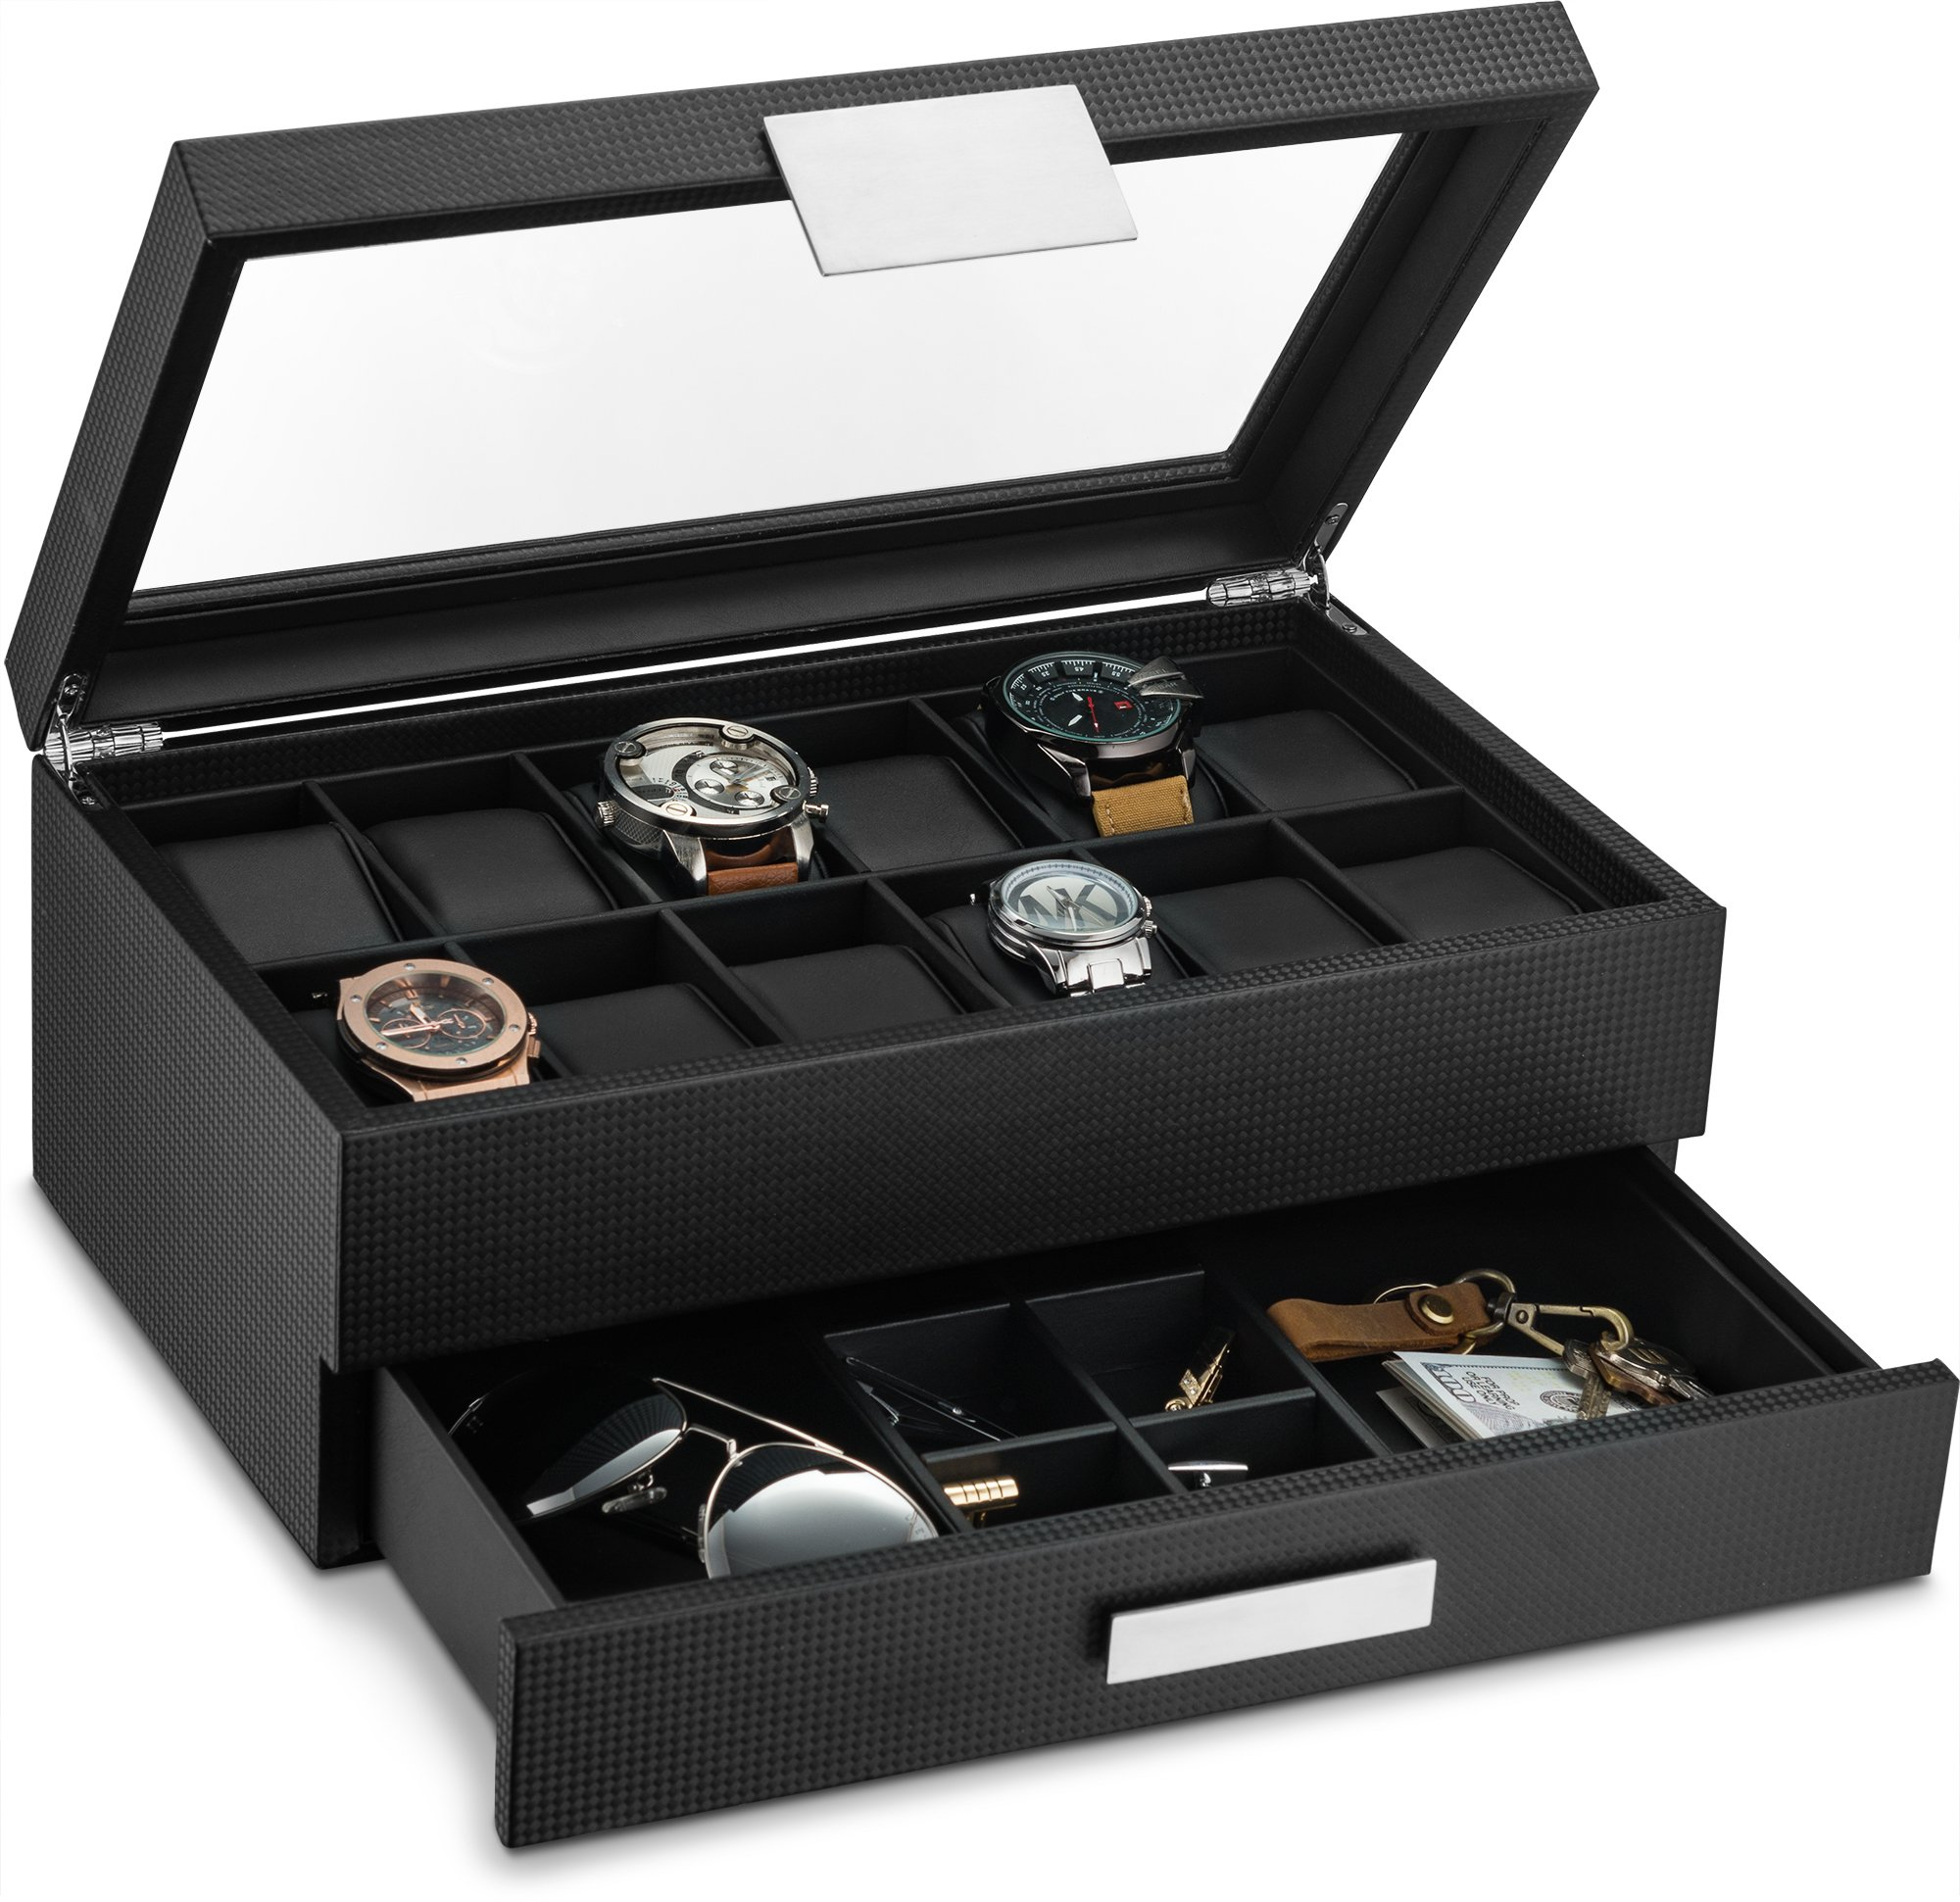 Glenor Co Watch Box with Valet Drawer for Men - 12 Slot Luxury Watch Case Display Organizer, Carbon Fiber Design - Metal Buckle for Mens Jewelry Watches, Men's Storage Boxes Holder has Large Glass Top by Glenor Co.